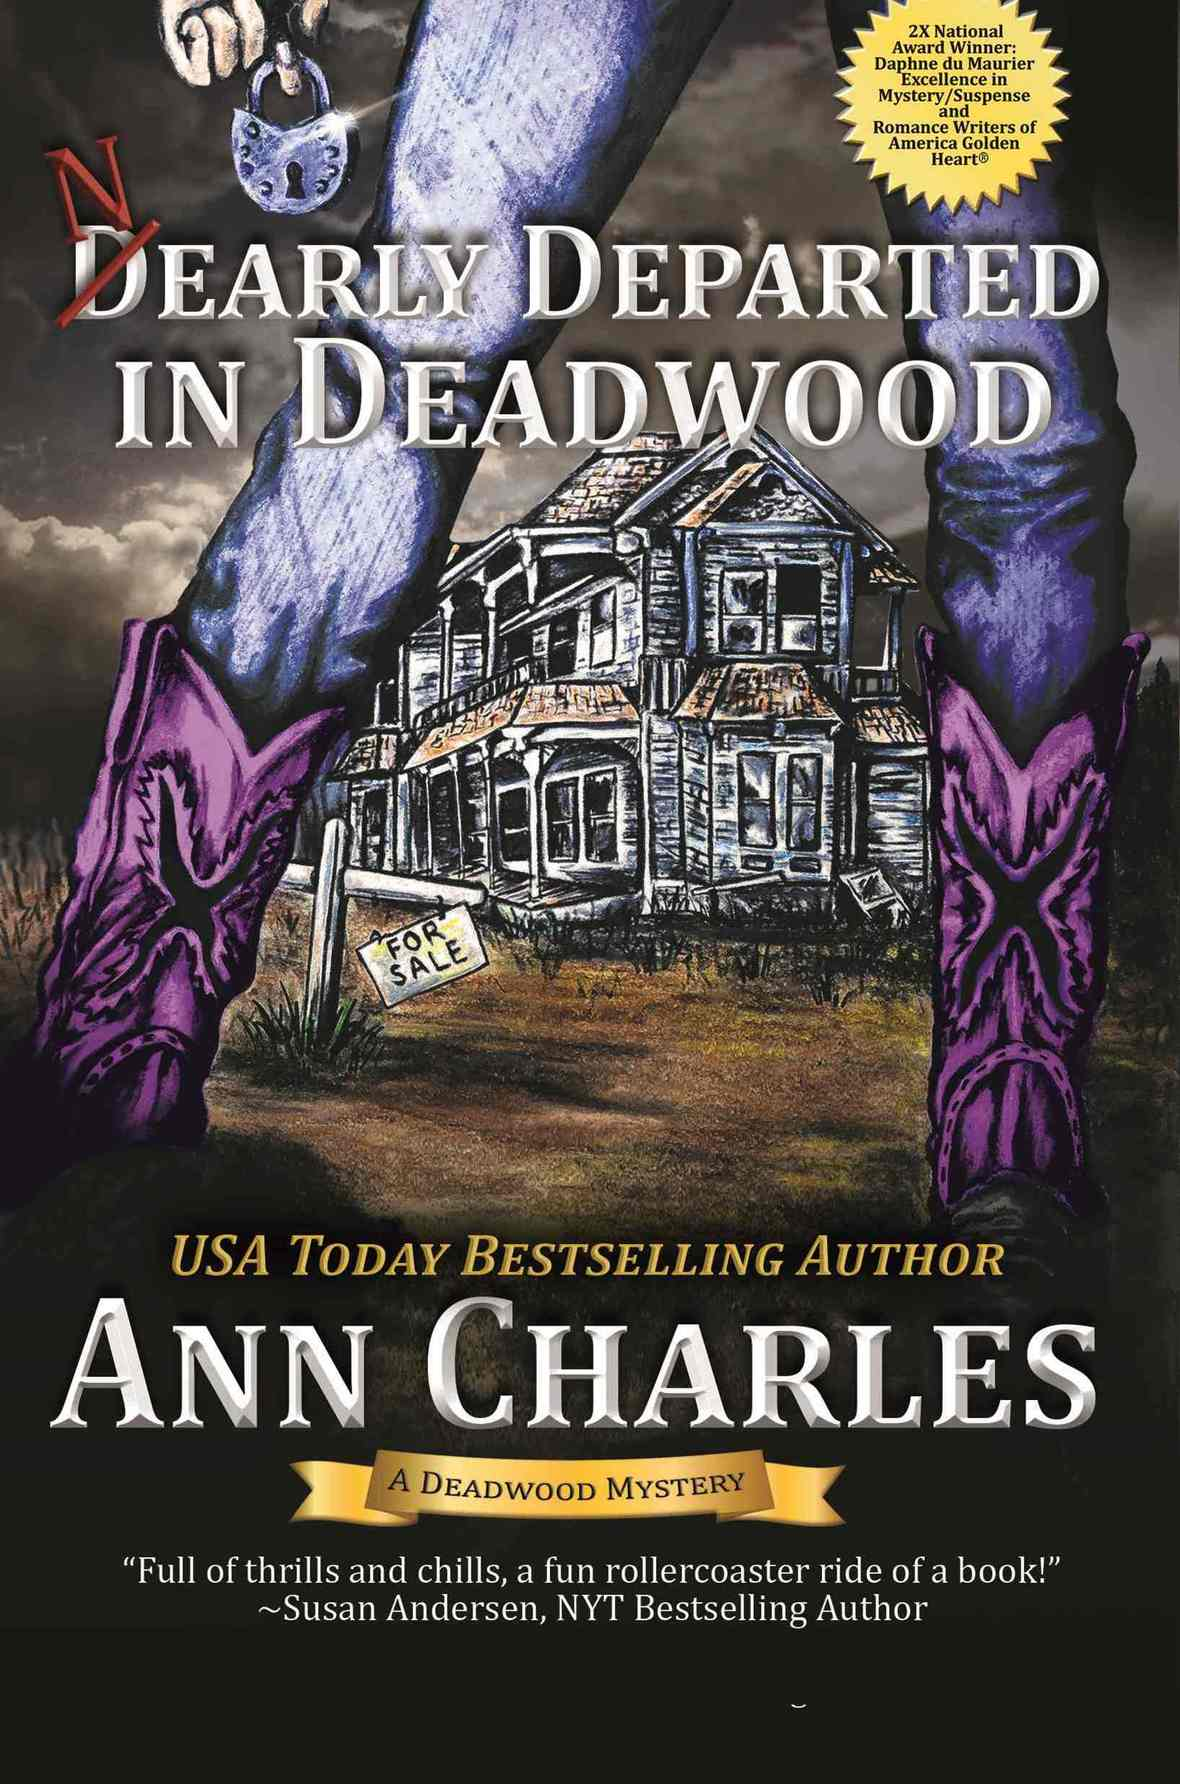 Nearly Departed in Deadwood Cover 300